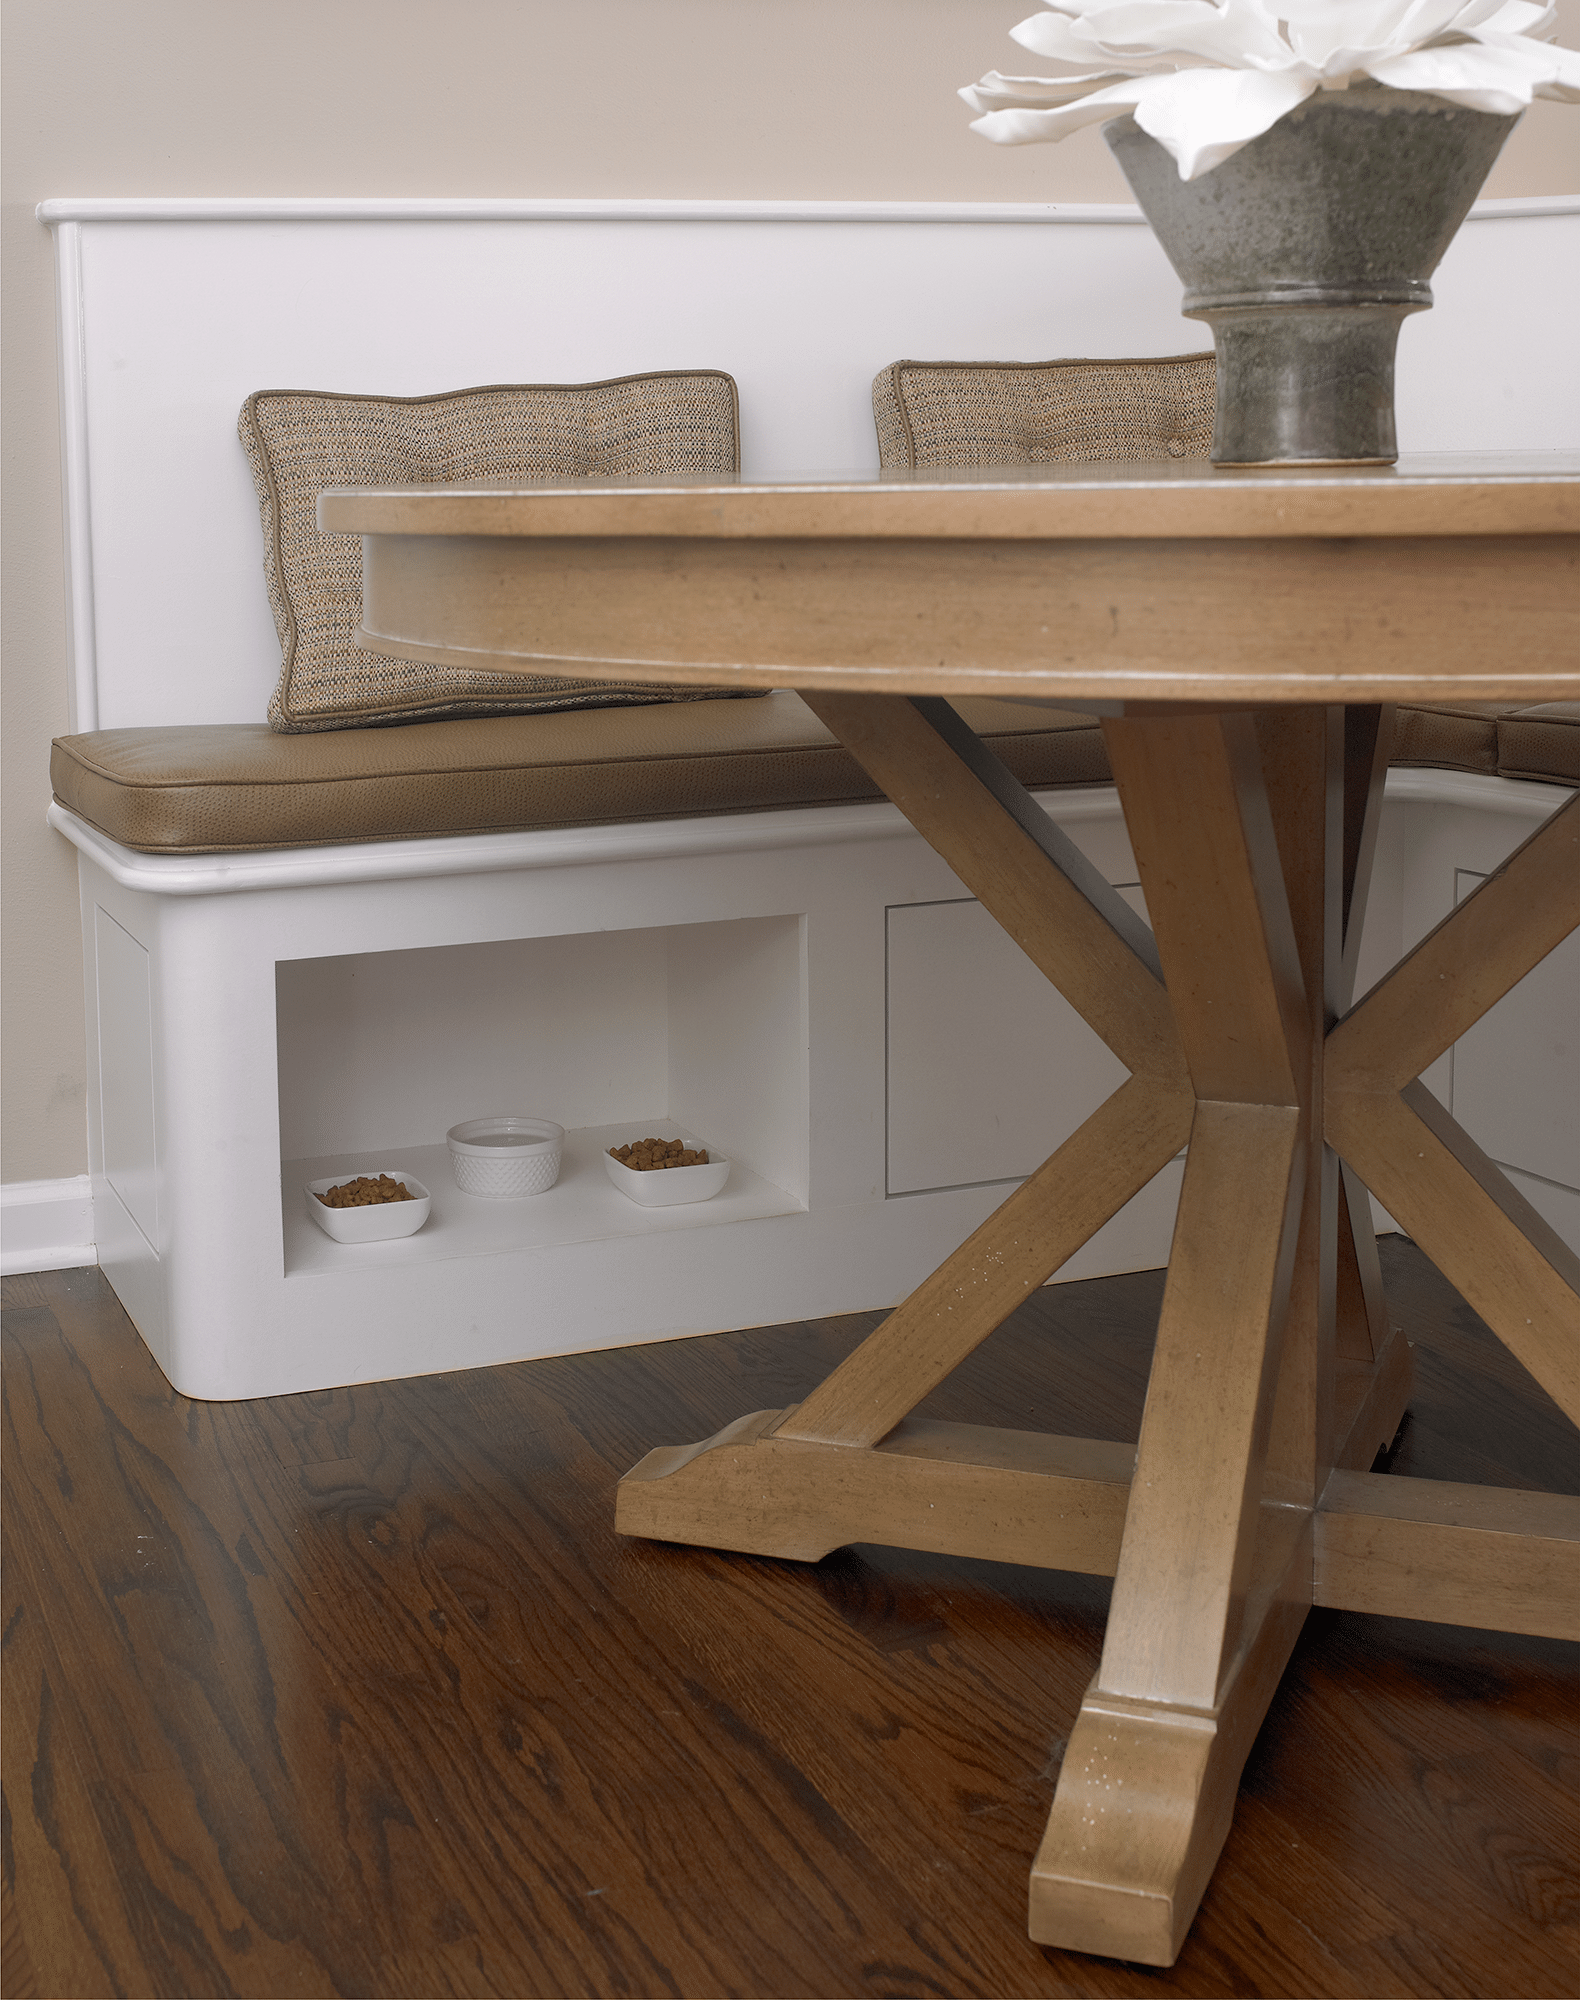 Brown wooden coffee table with vase